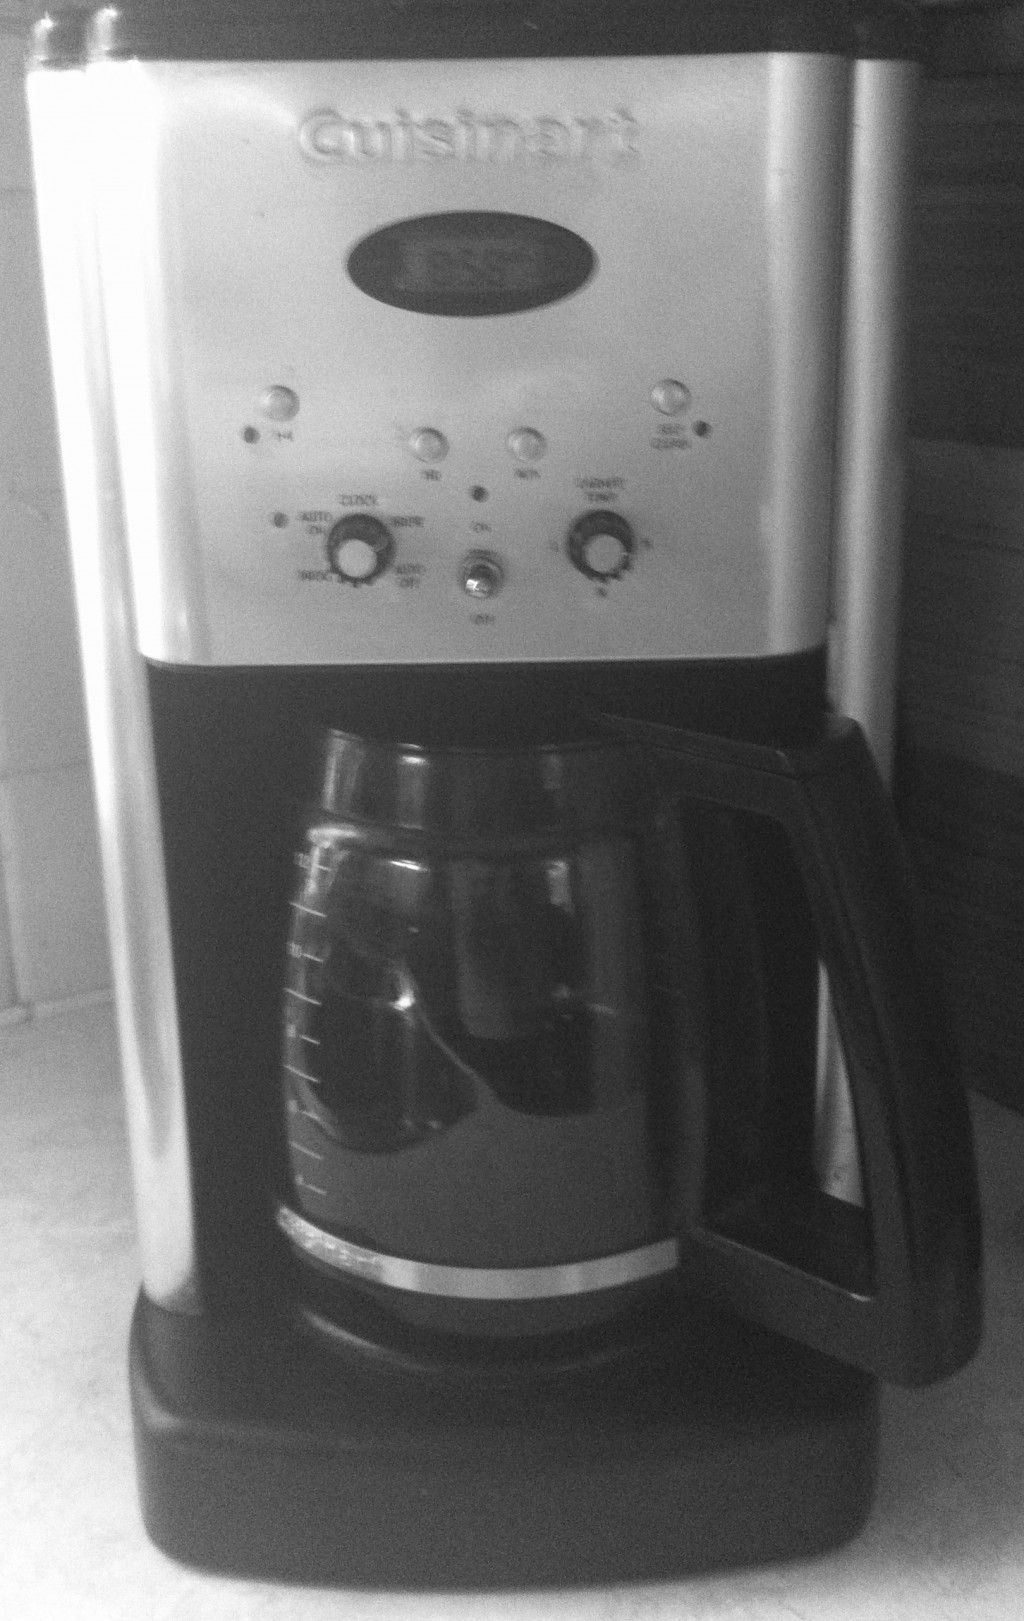 Cleaning With Clr Coffee, Coffee maker, Cleaning